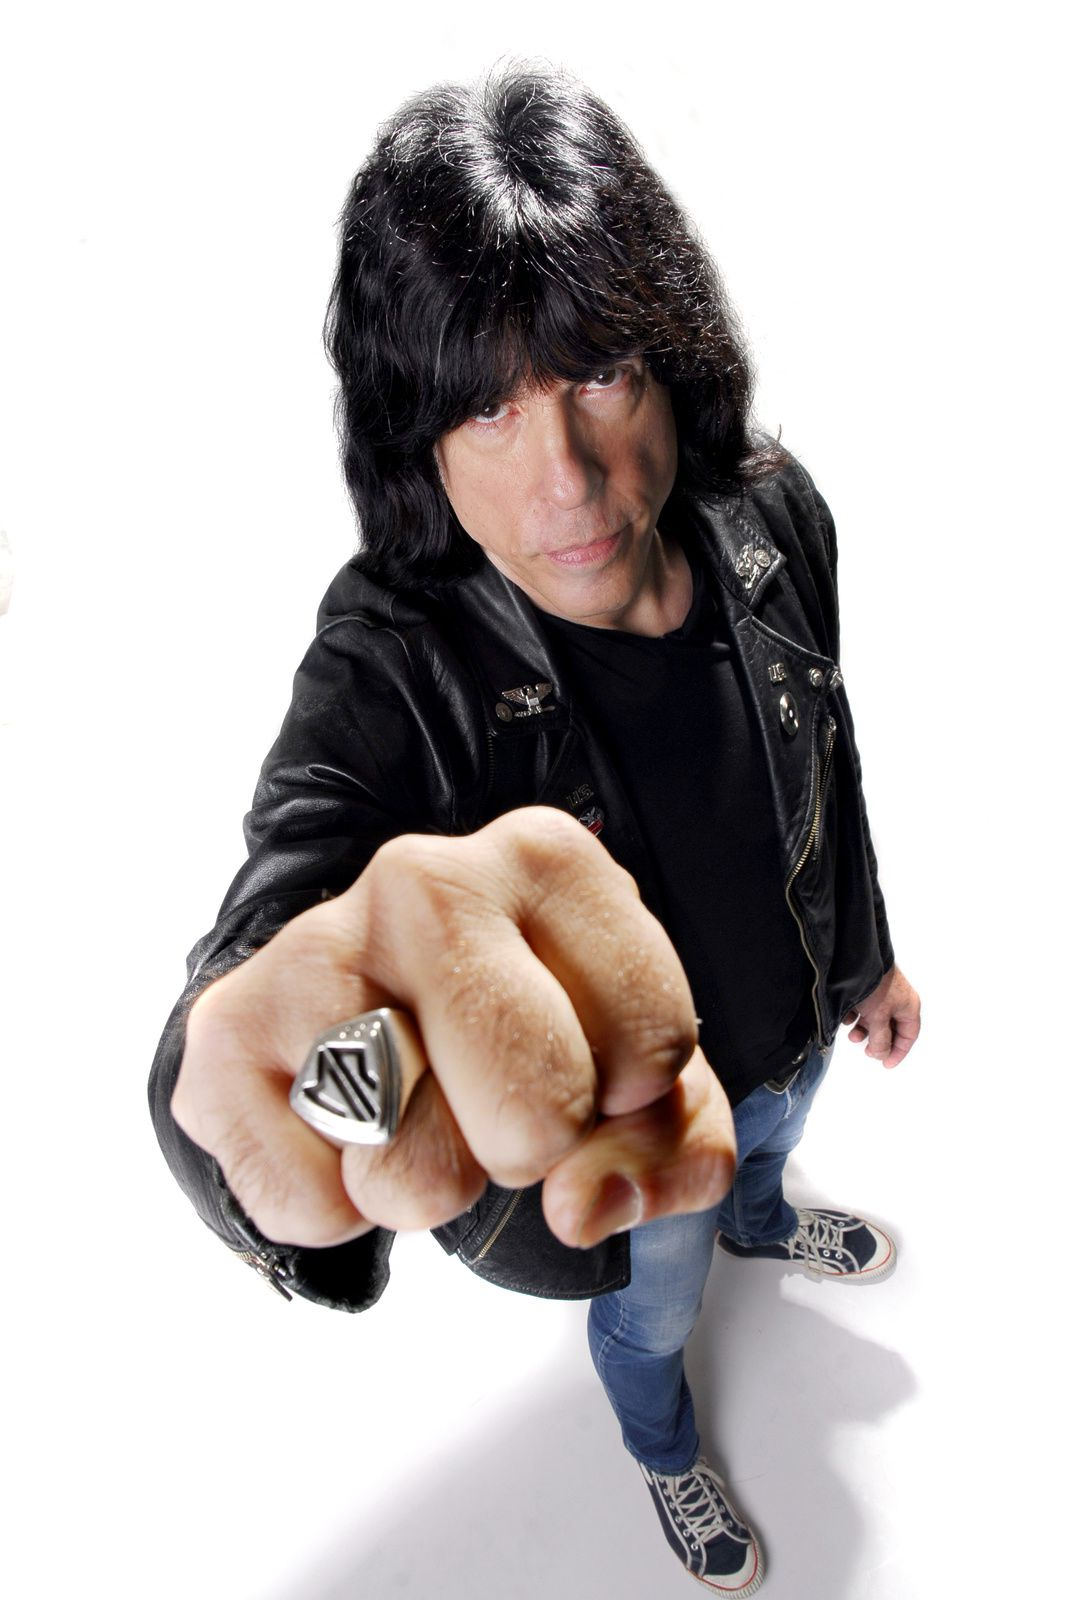 Marky Ramone of Marky Ramone's Blitzkrieg and formerly of bands such as the Ramones, Dust, Wayne County and Richard Hell and the Voidoids (2011)